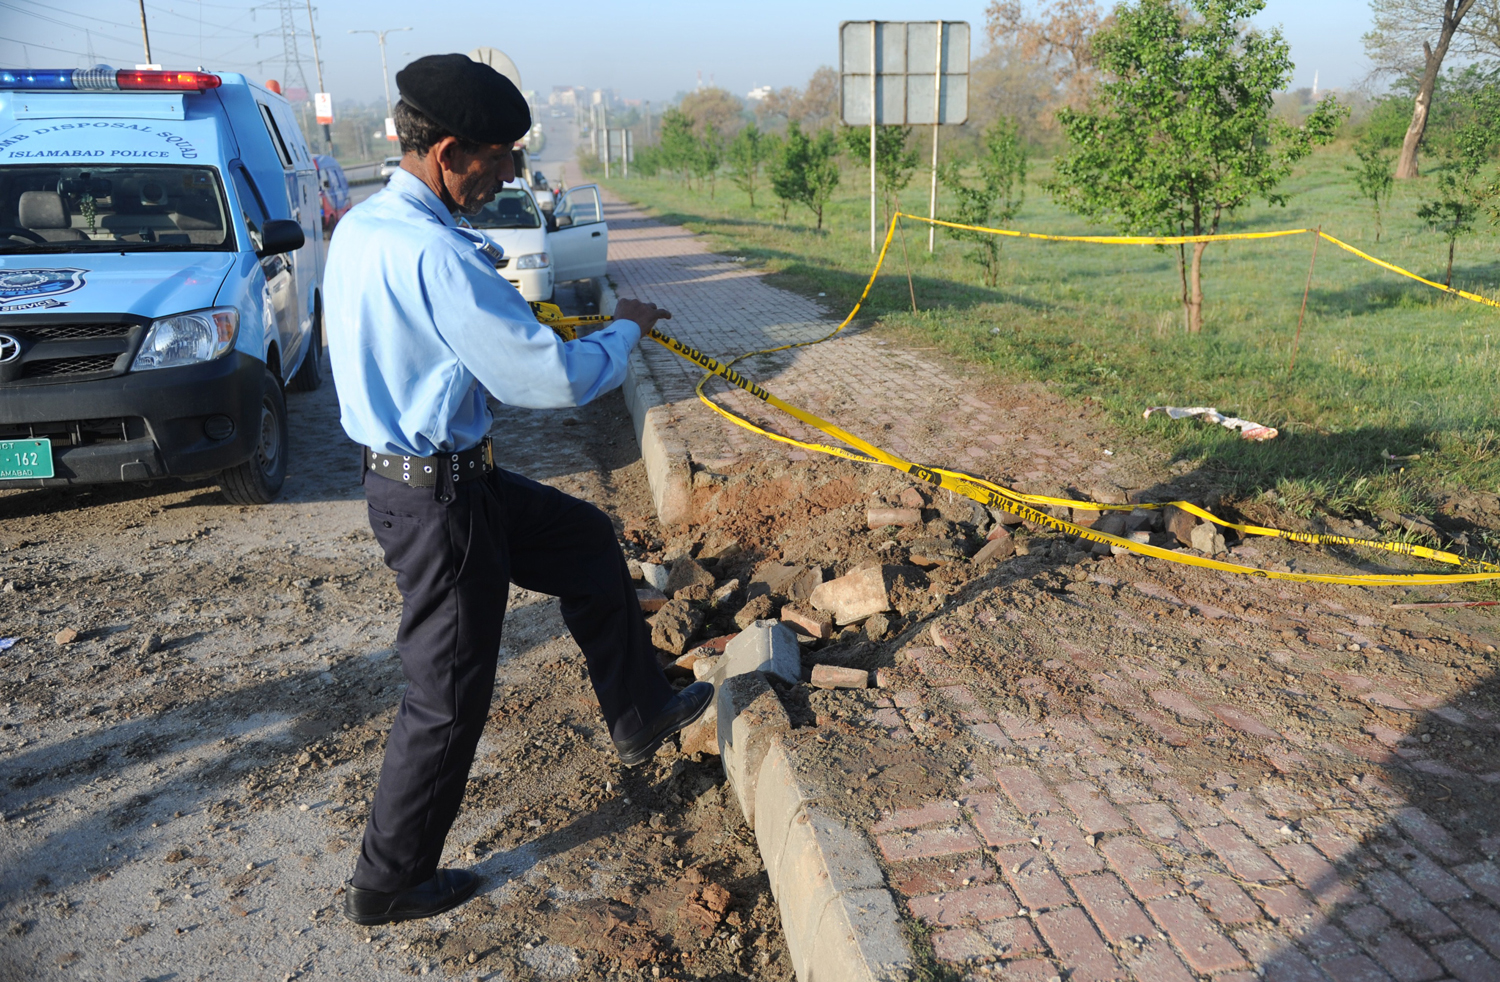 A Pakistani policeman rolls barricade tape at the site of a bomb explosion in Islamabad on April 3, 2014.